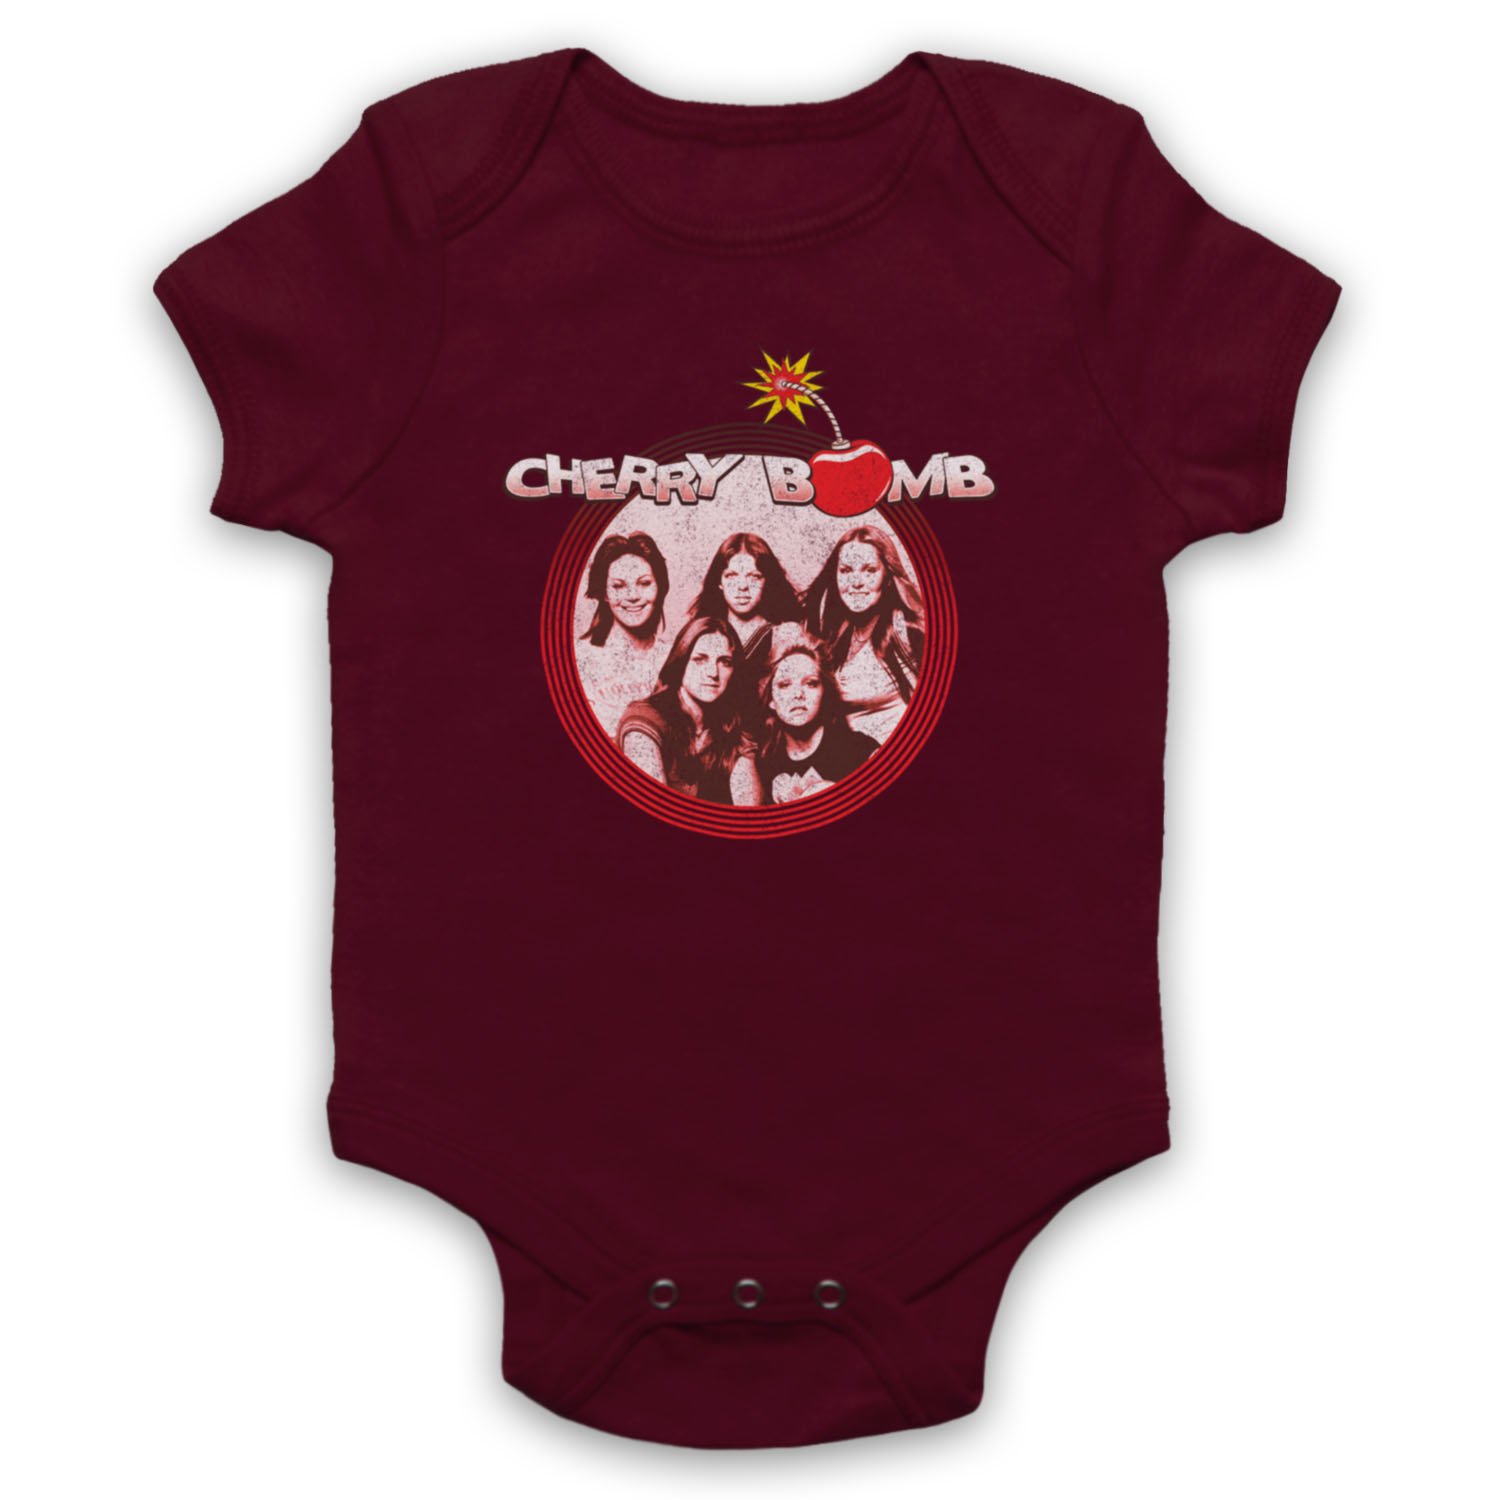 CHERRY BOMB UNOFFICIAL THE RUNAWAYS JOAN JETT ROCK BAND BABY GROW BABYGROW GIFT